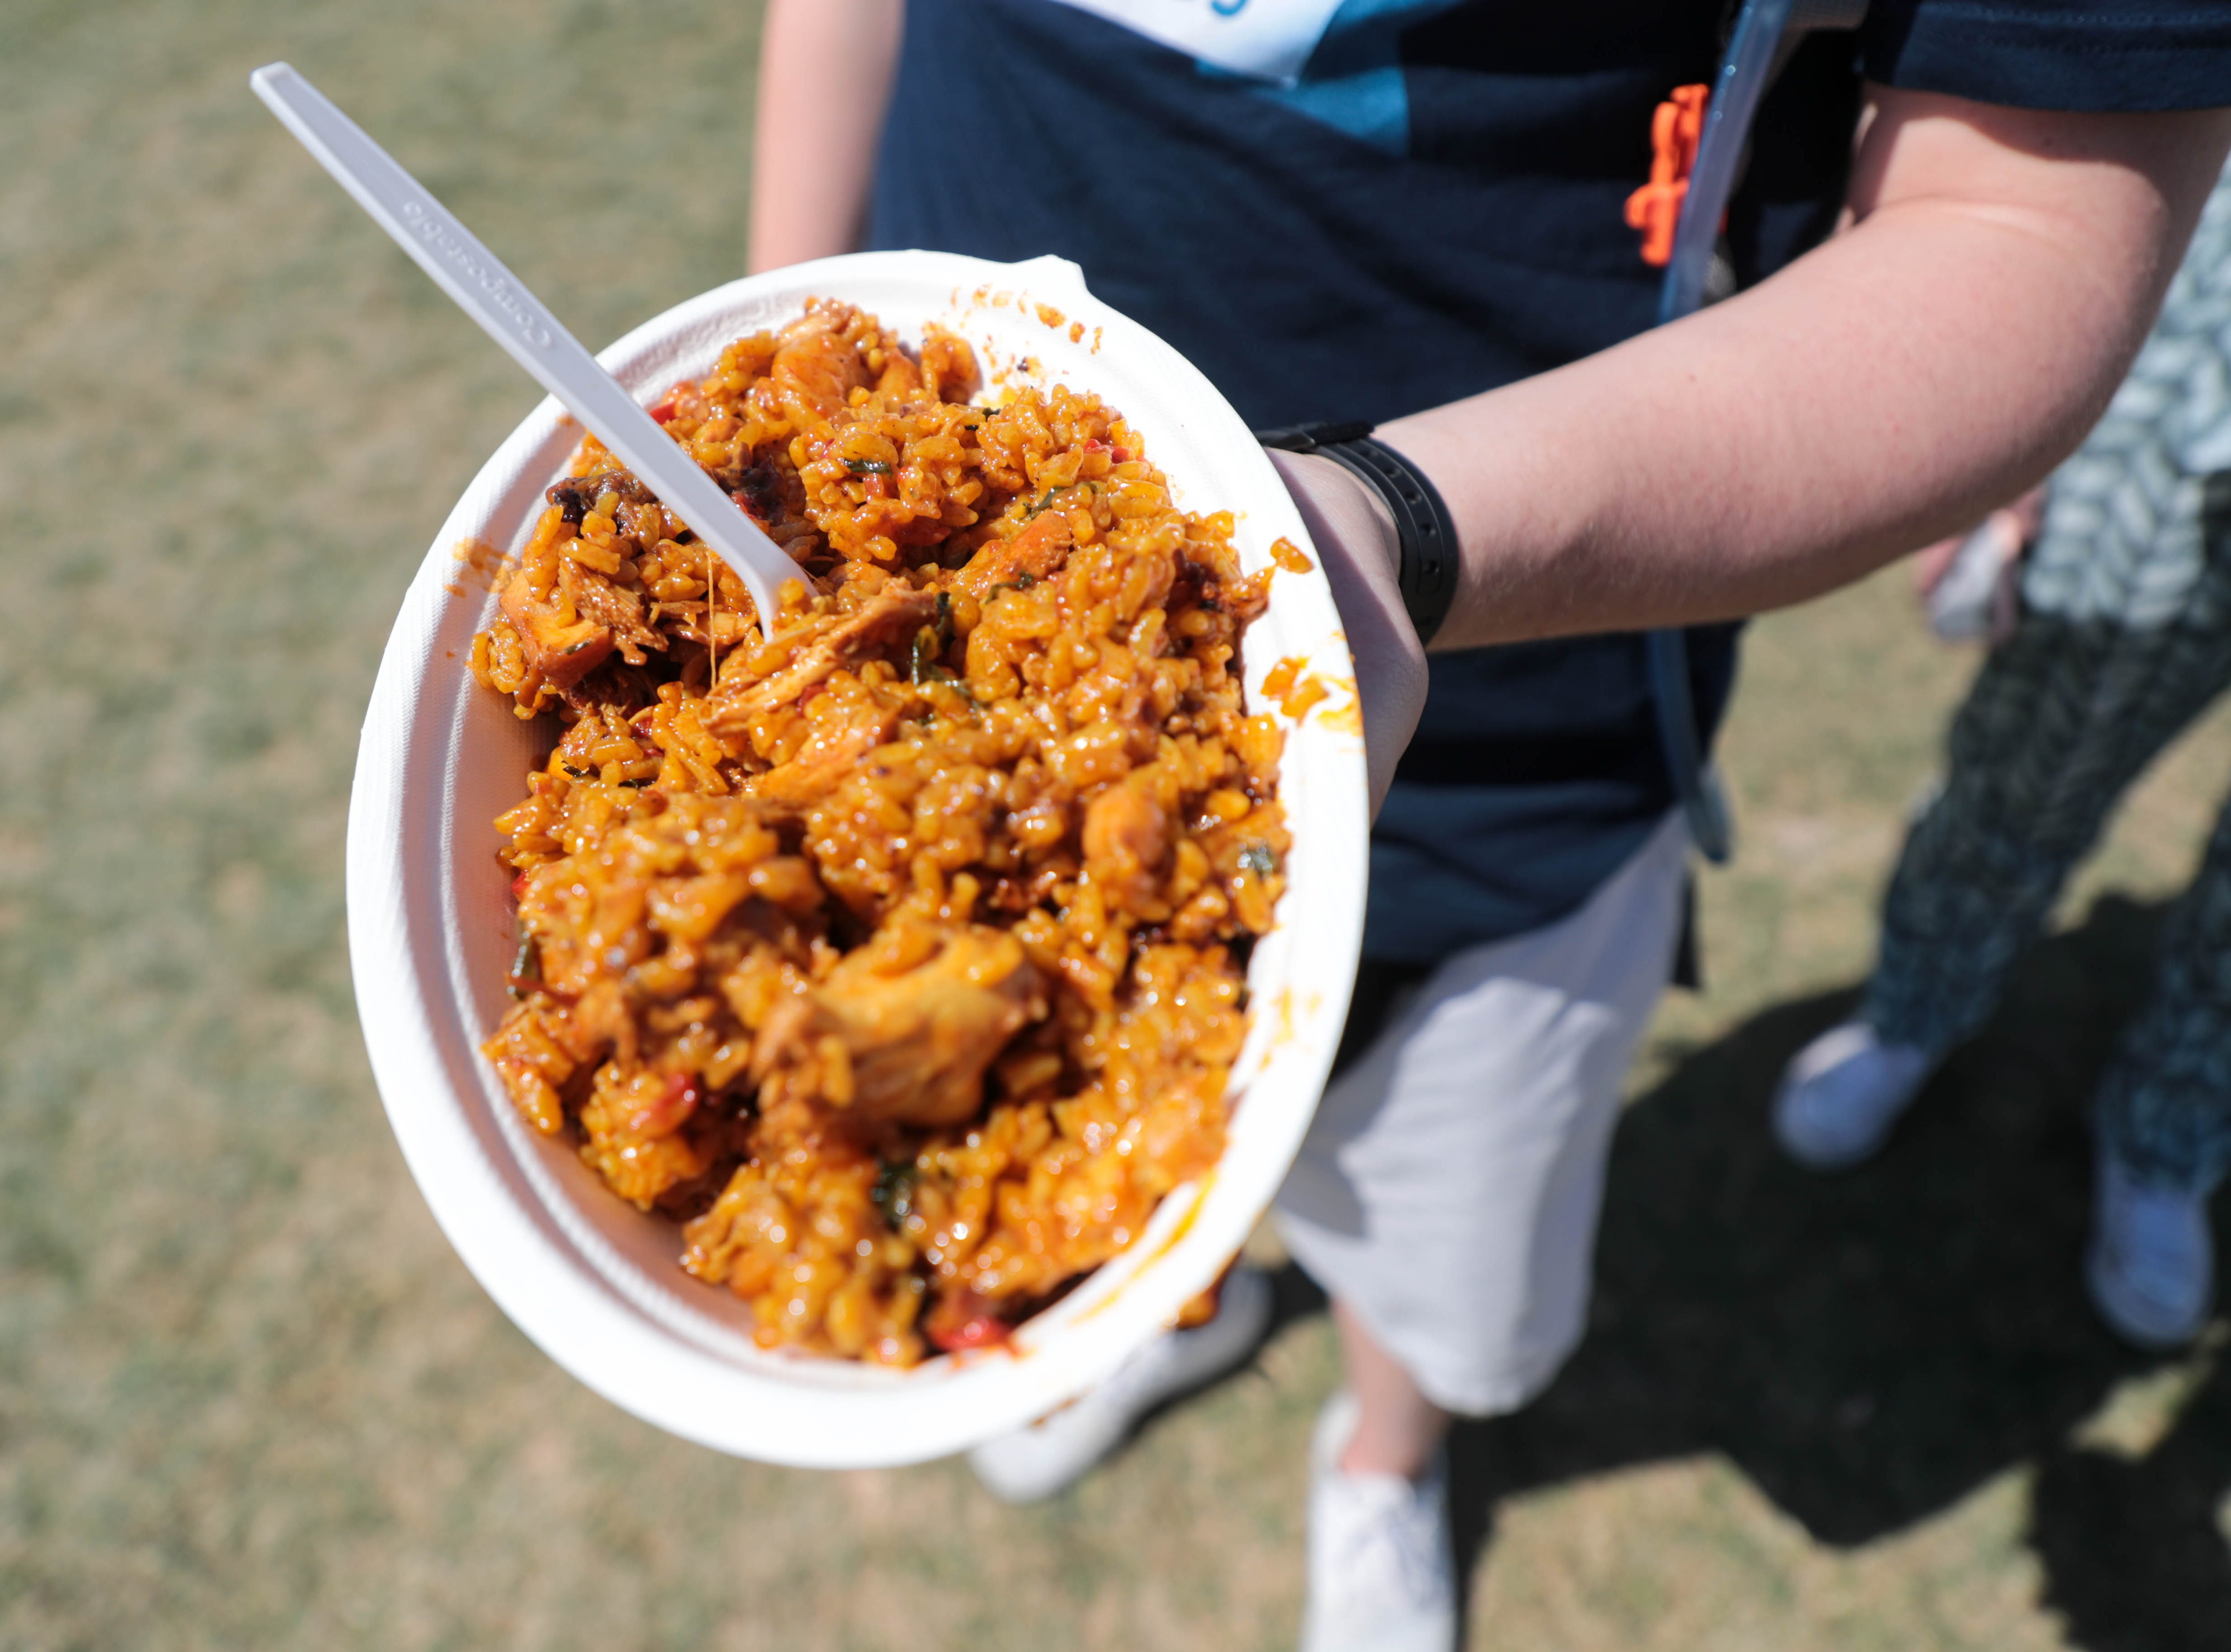 A man order paella at Coachella Valley Music and Arts Festival in Indio, Calif. on Friday, April 12, 2019.